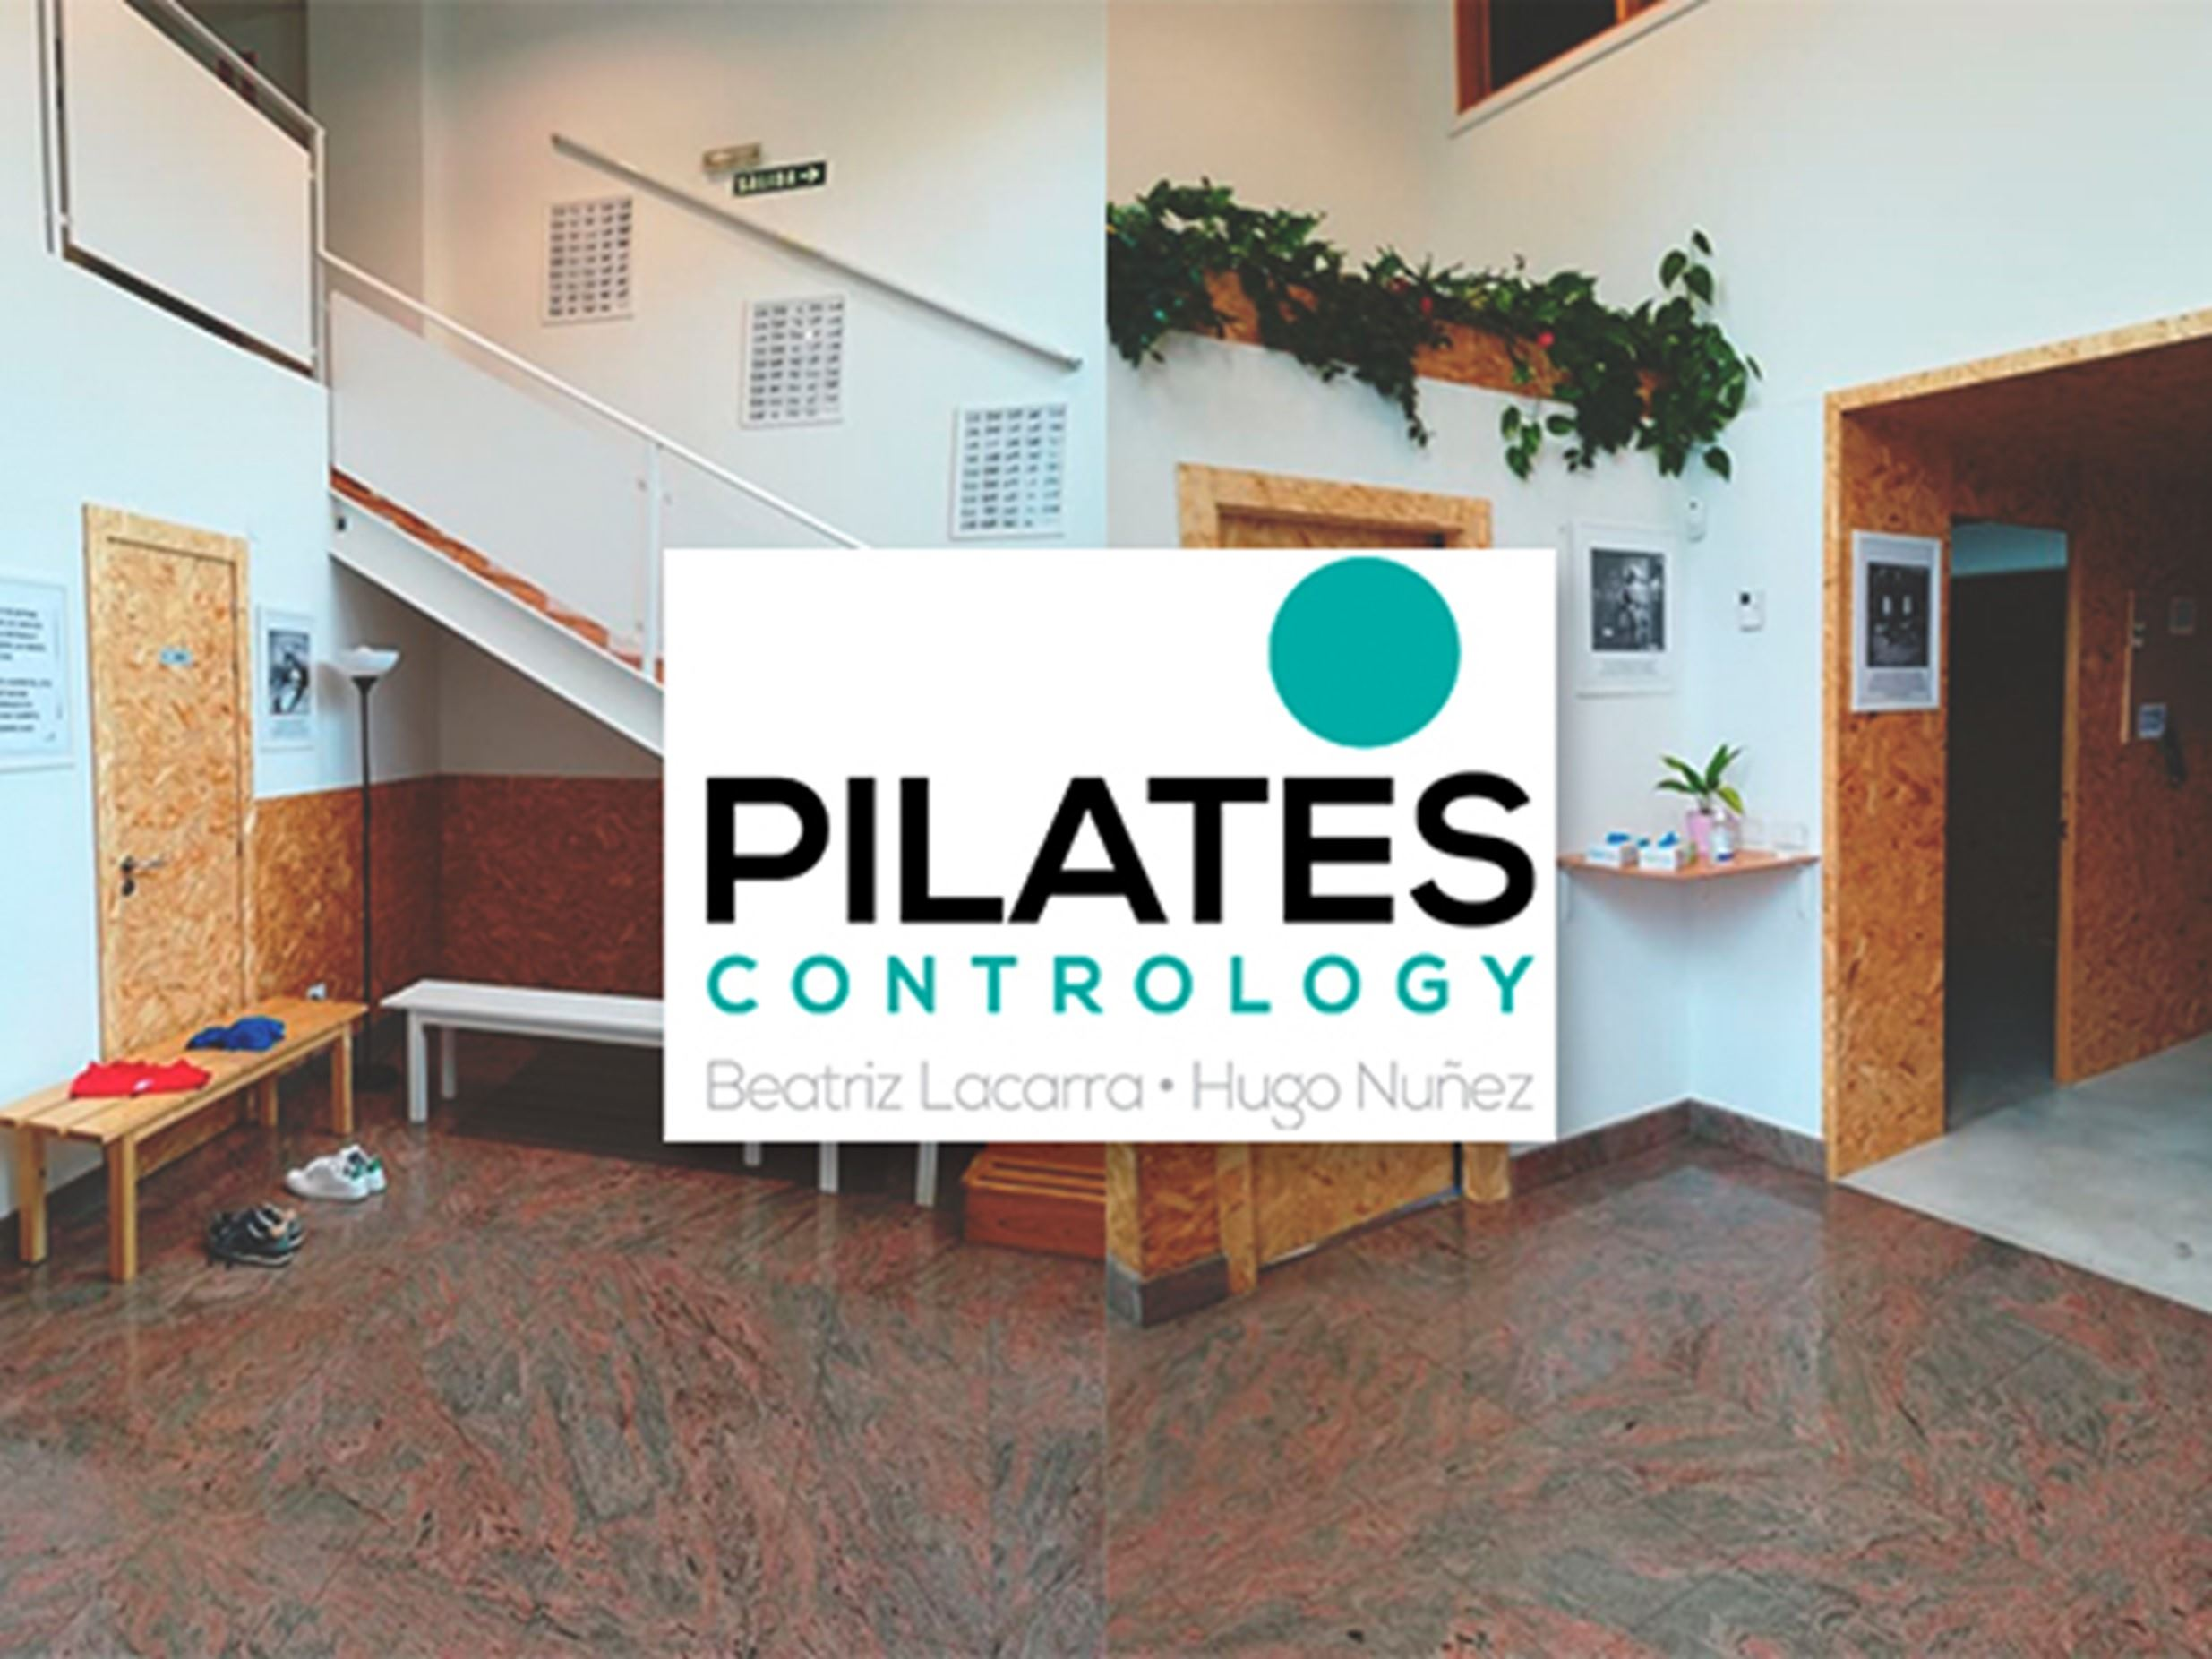 pilates-contrology-navarra